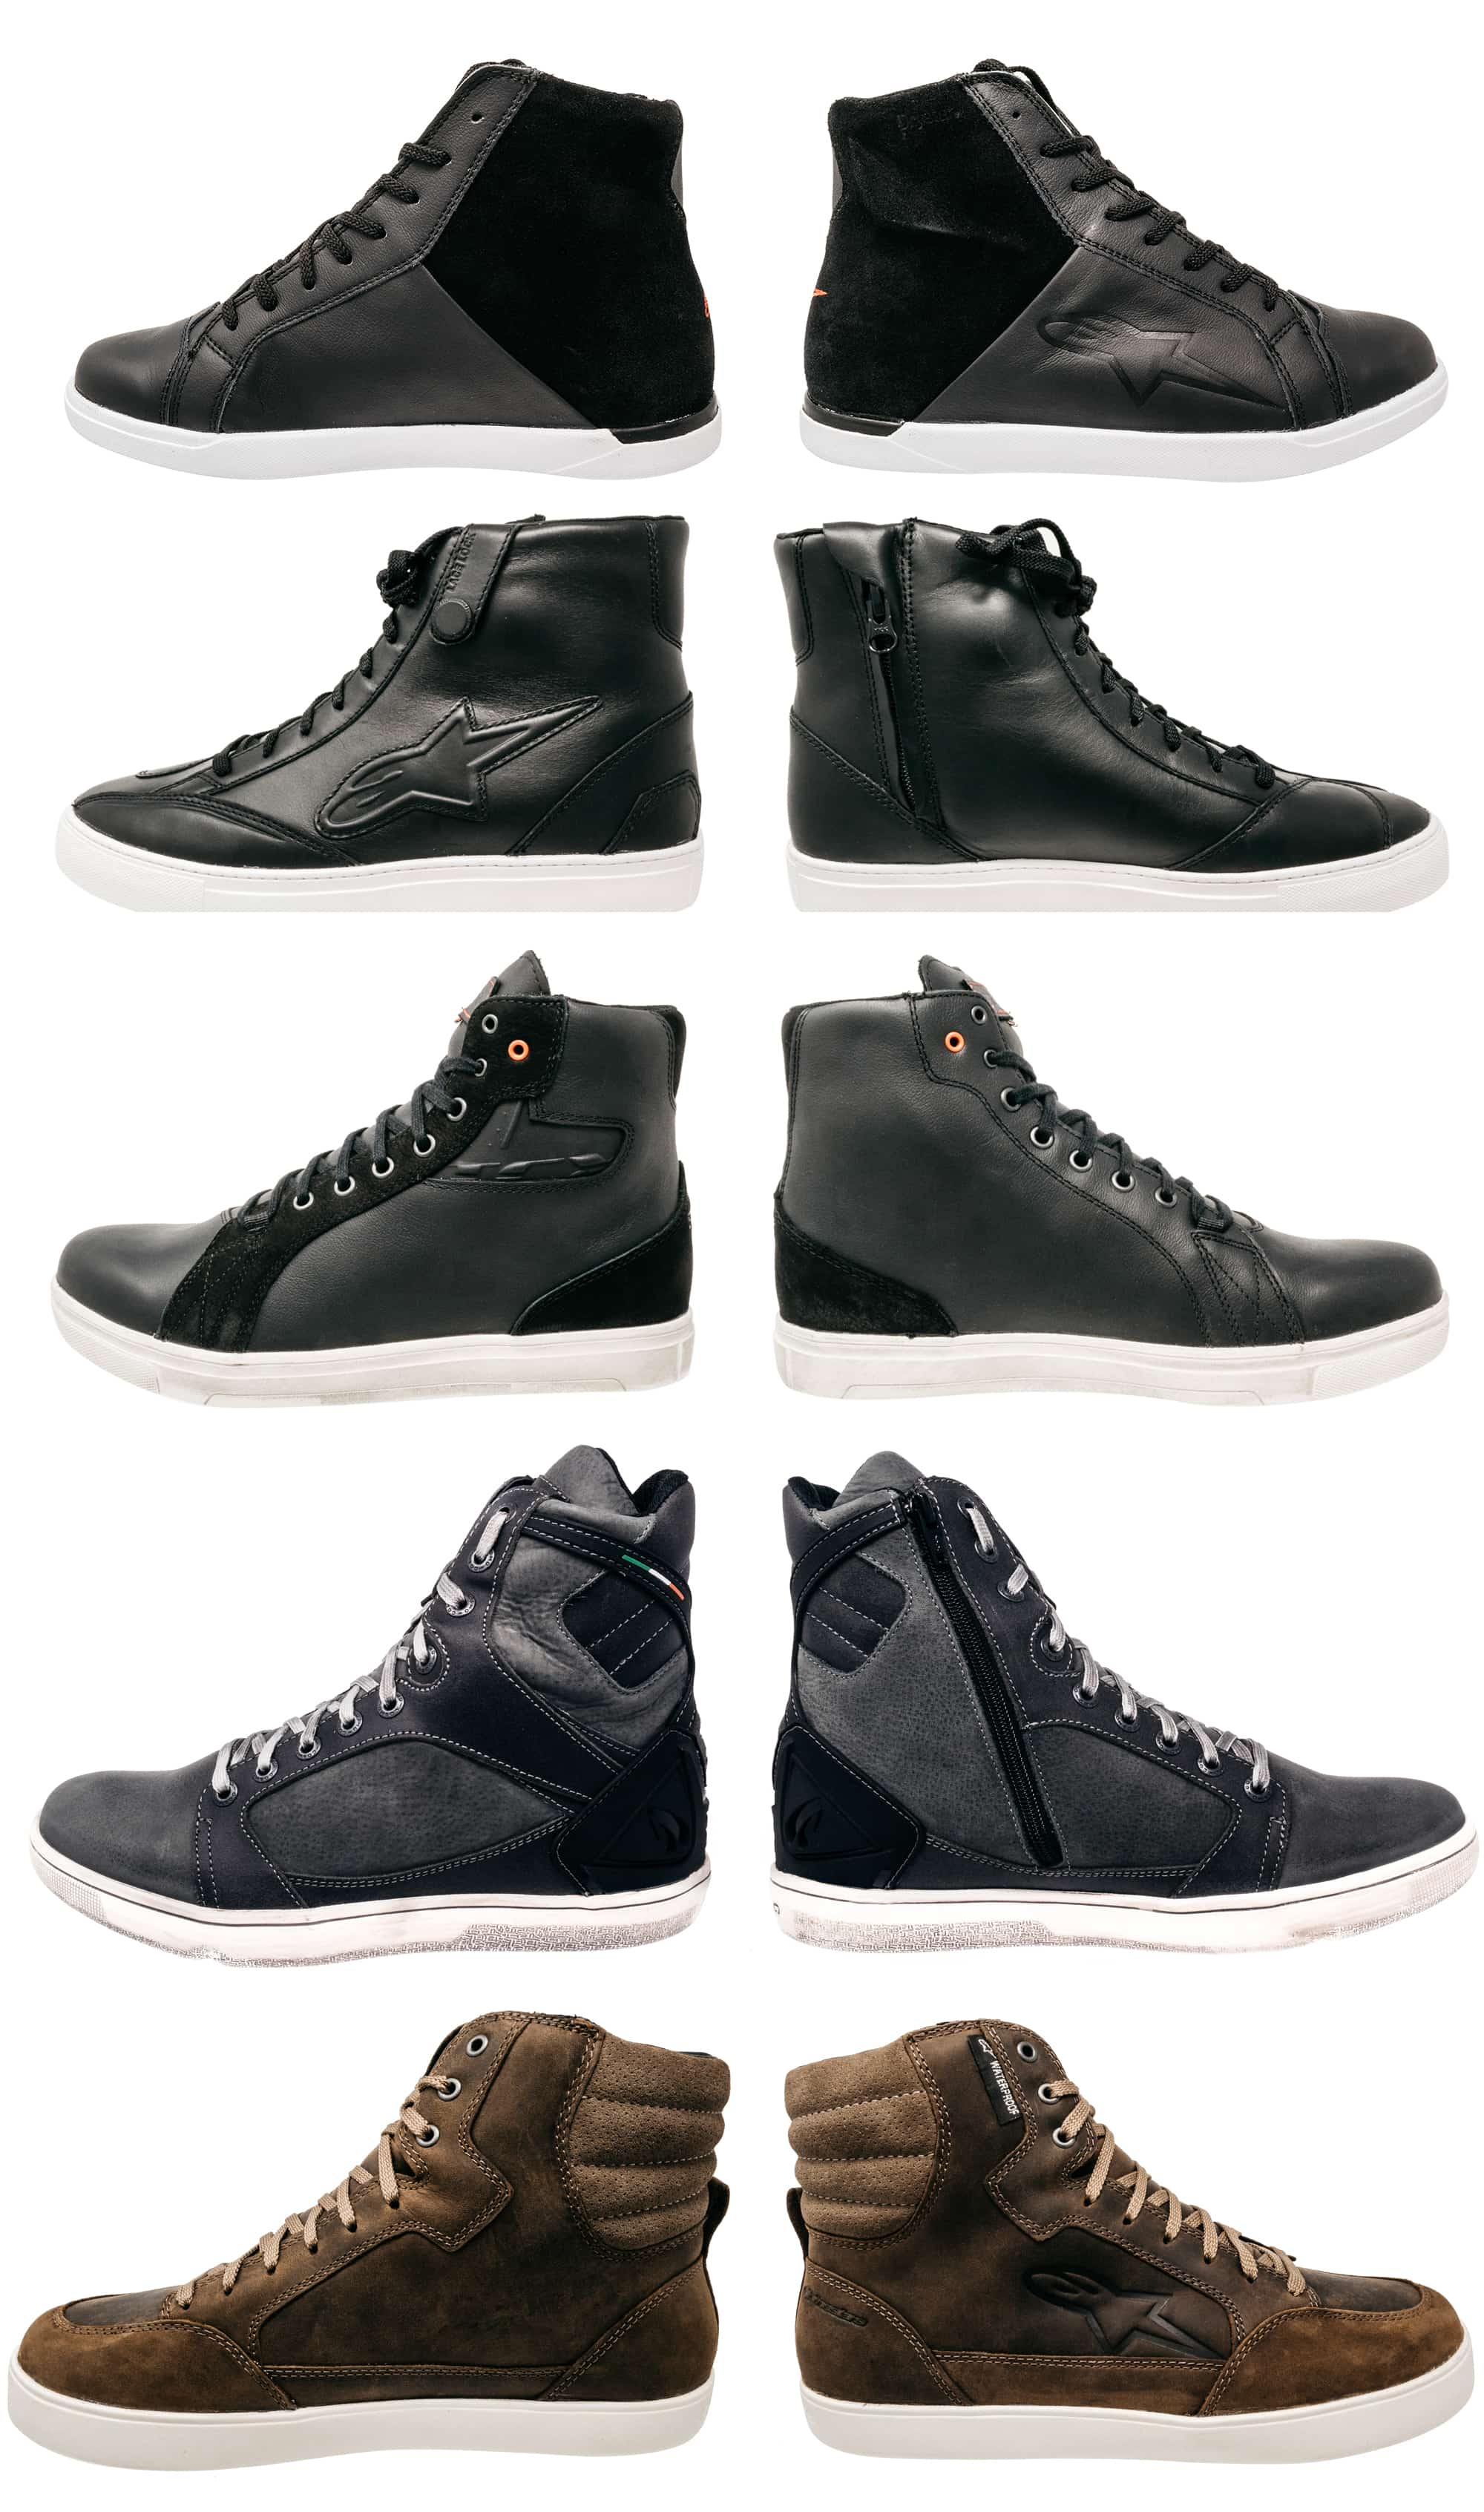 Casual Motorcycle Boots The Top 10 Styles This Season Inspire At Getgeared